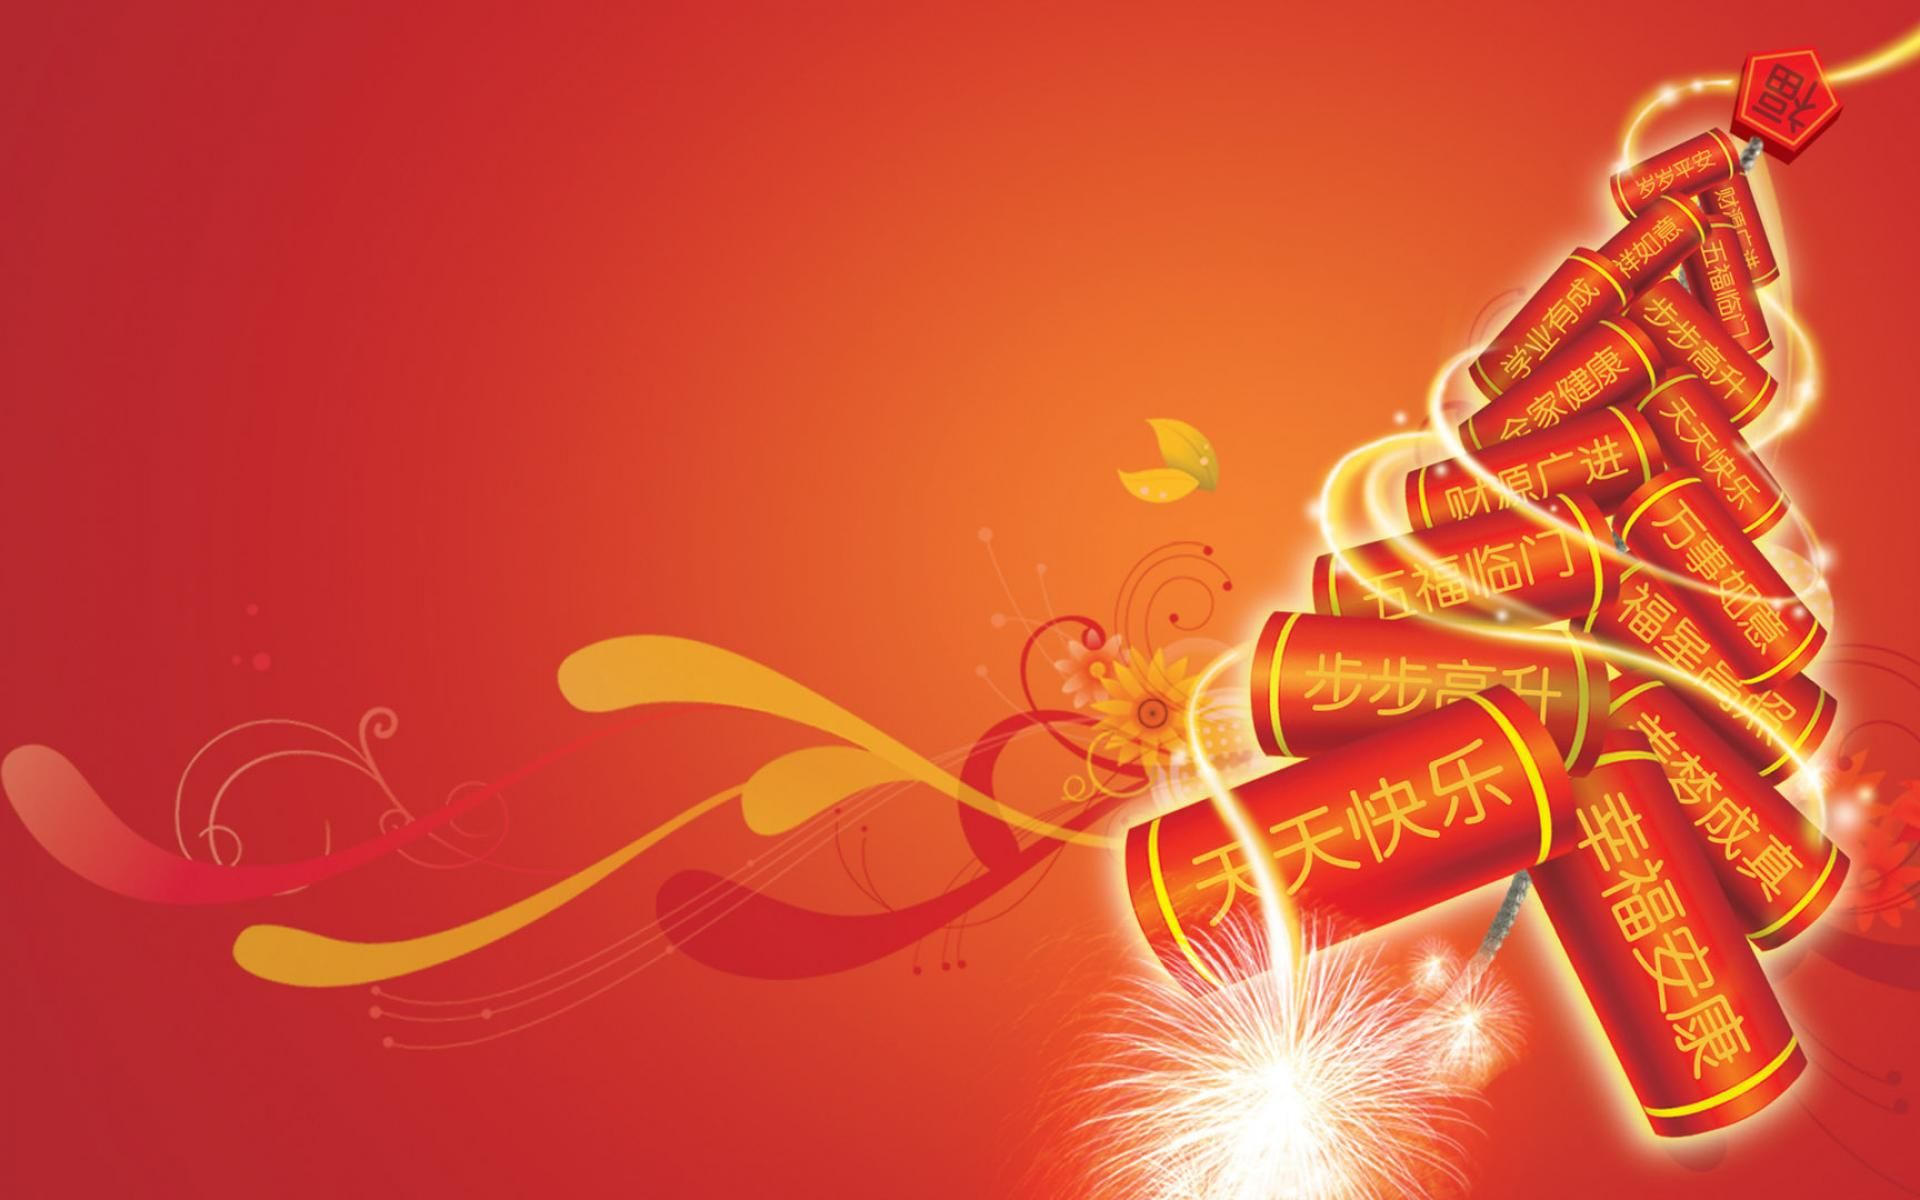 download chinese new year wallpaper desktop wallpapers 2015 1920x1200